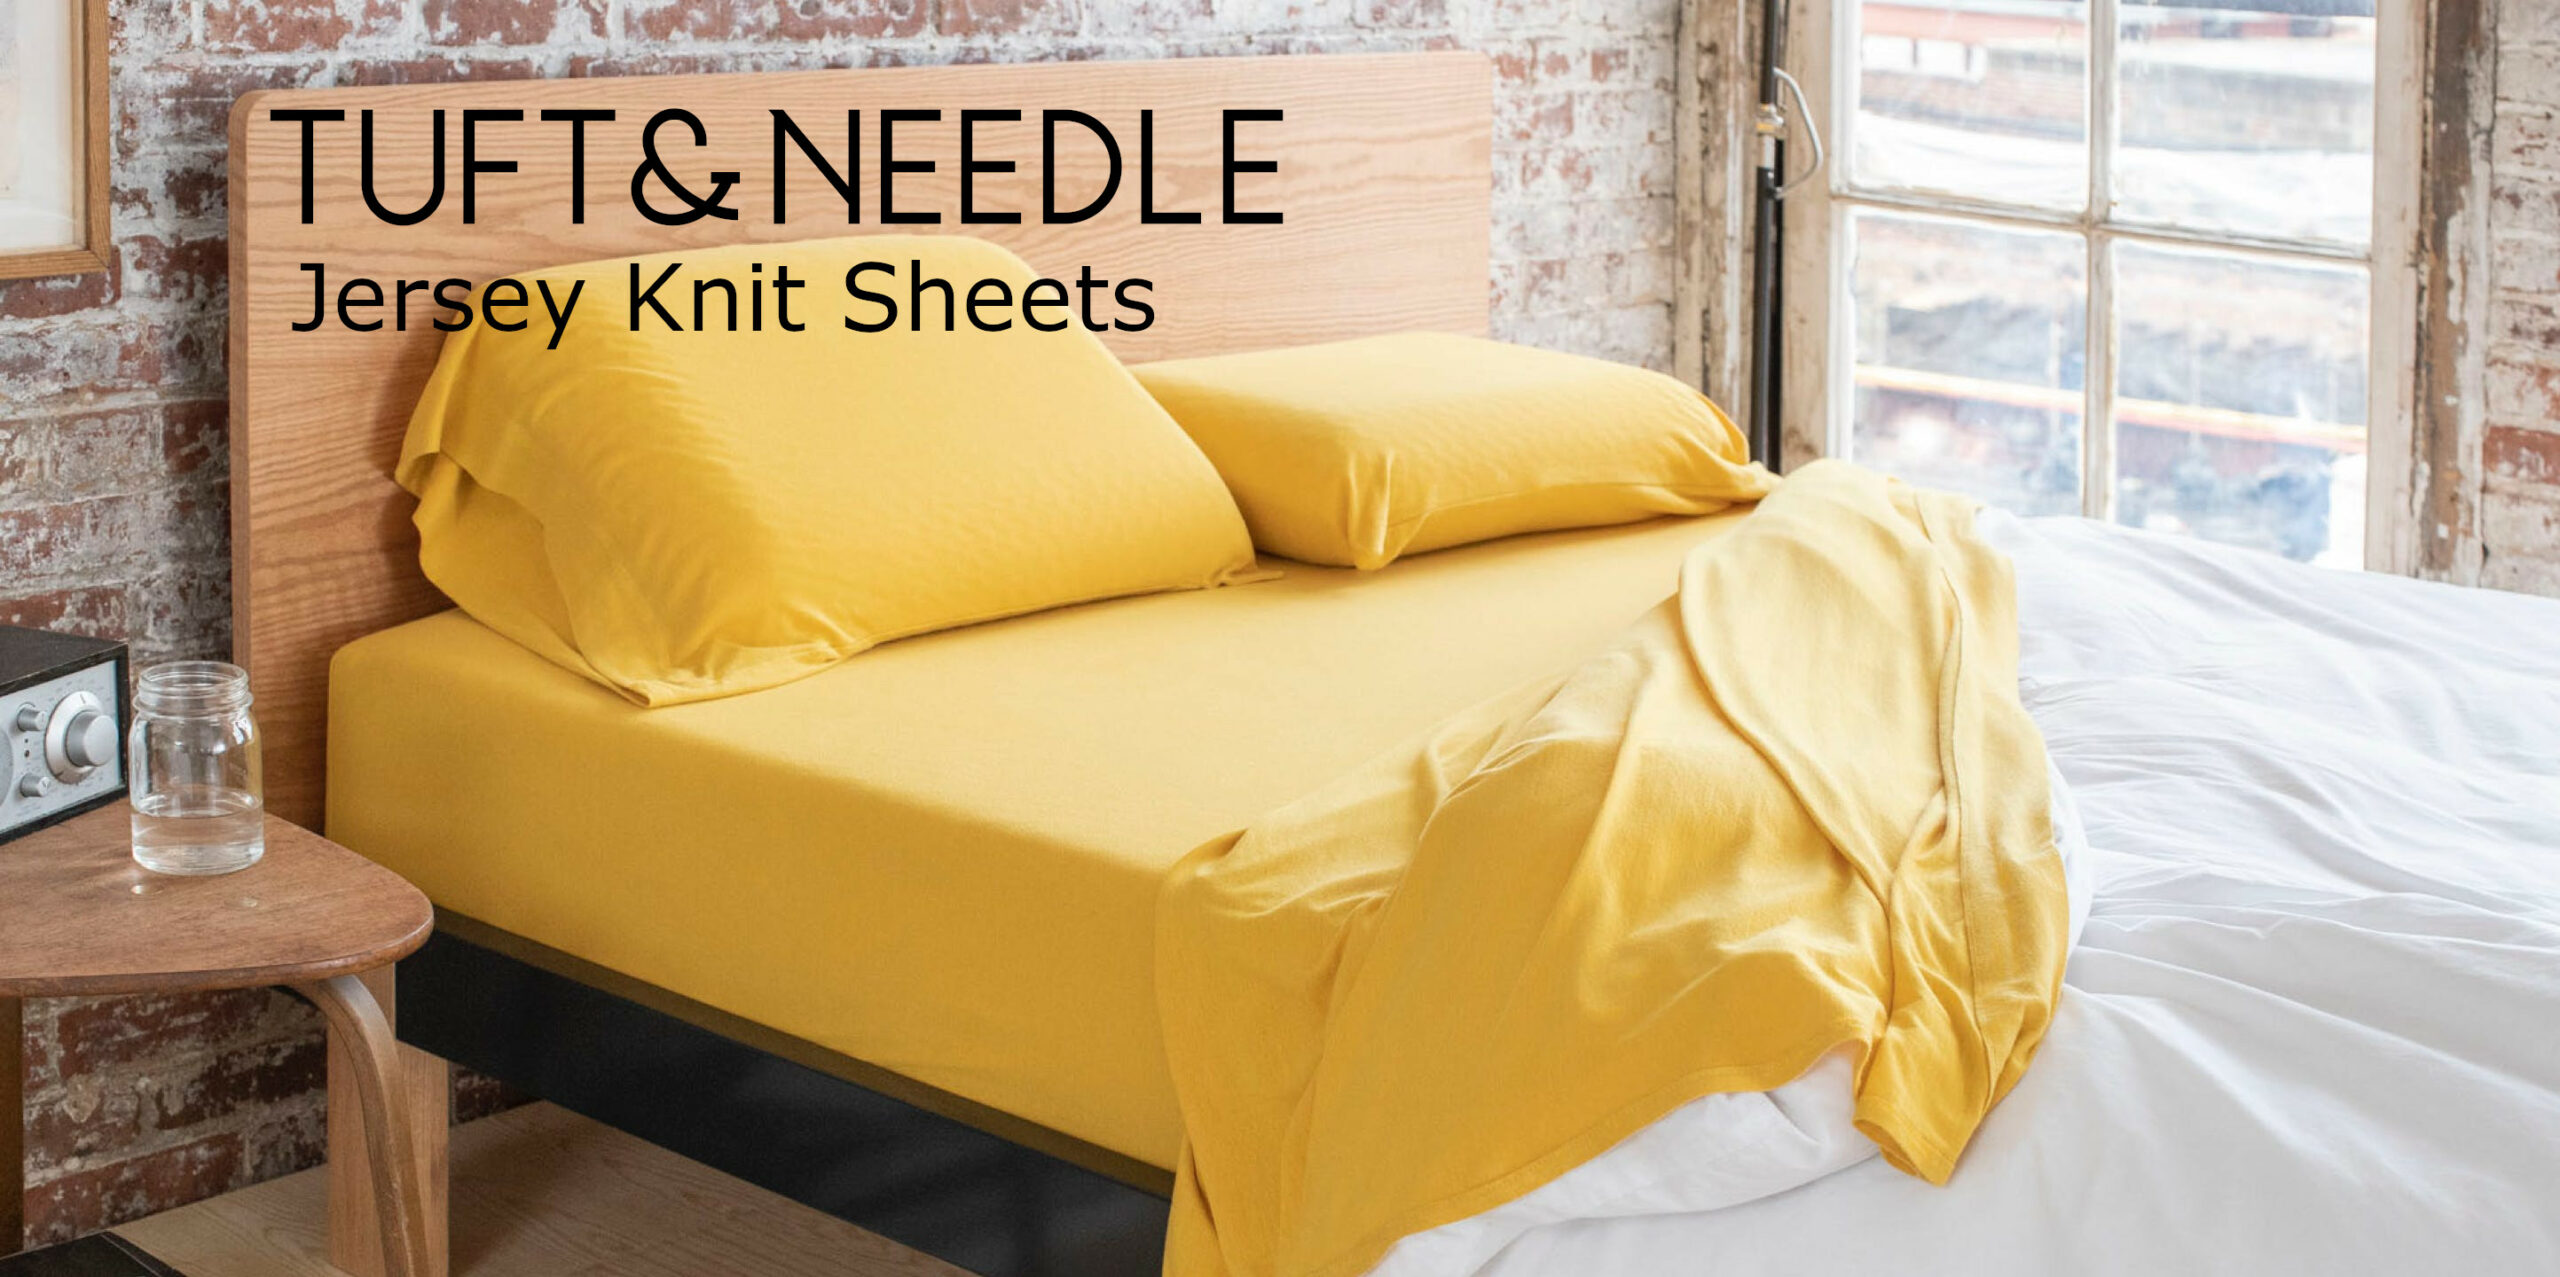 tuft and needle jersey knit sheets review